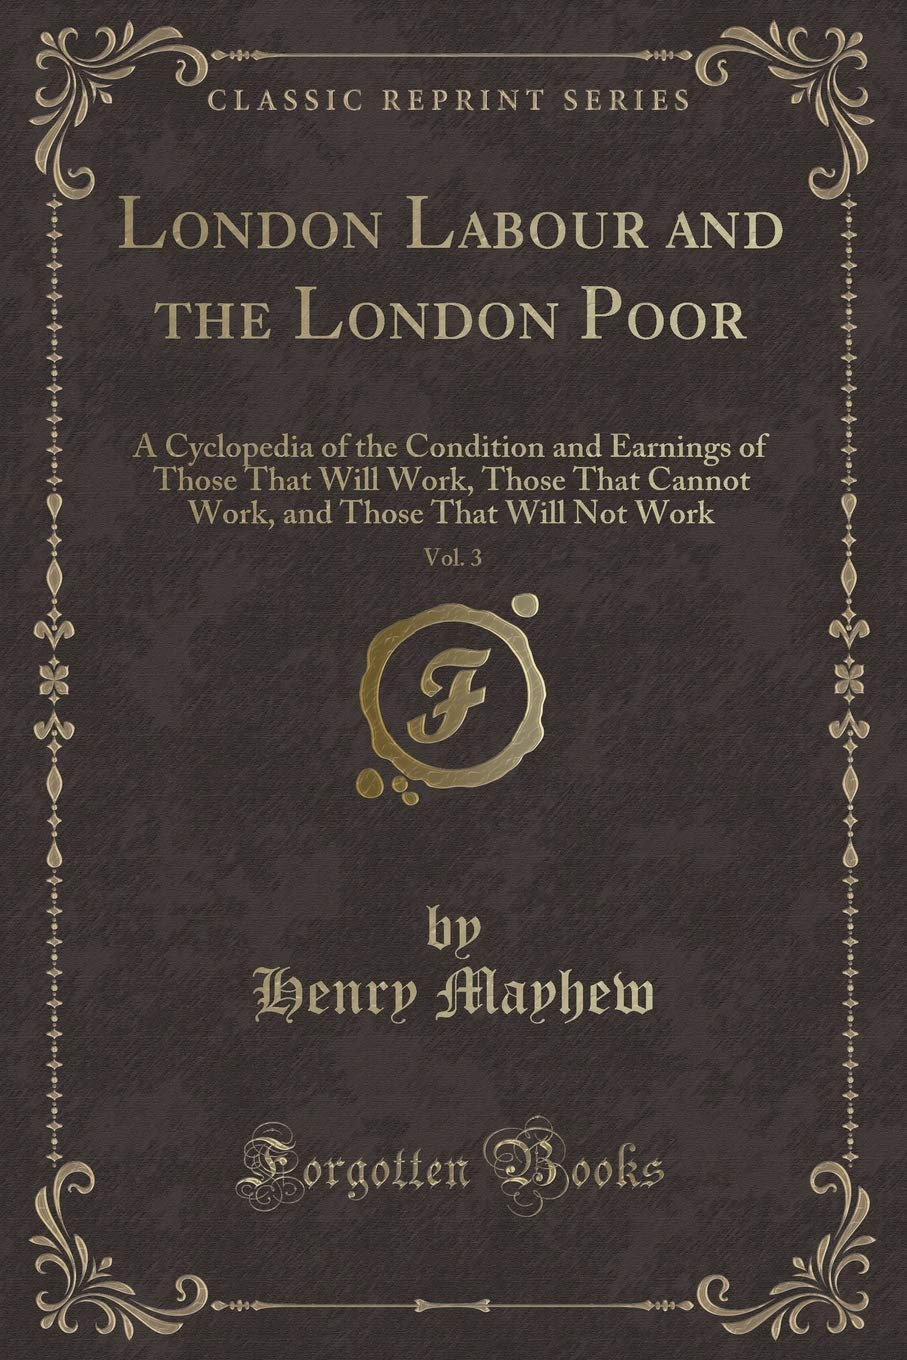 Download London Labour and the London Poor, Vol. 3: A Cyclopedia of the Condition and Earnings of Those That Will Work, Those That Cannot Work, and Those That Will Not Work (Classic Reprint) pdf epub